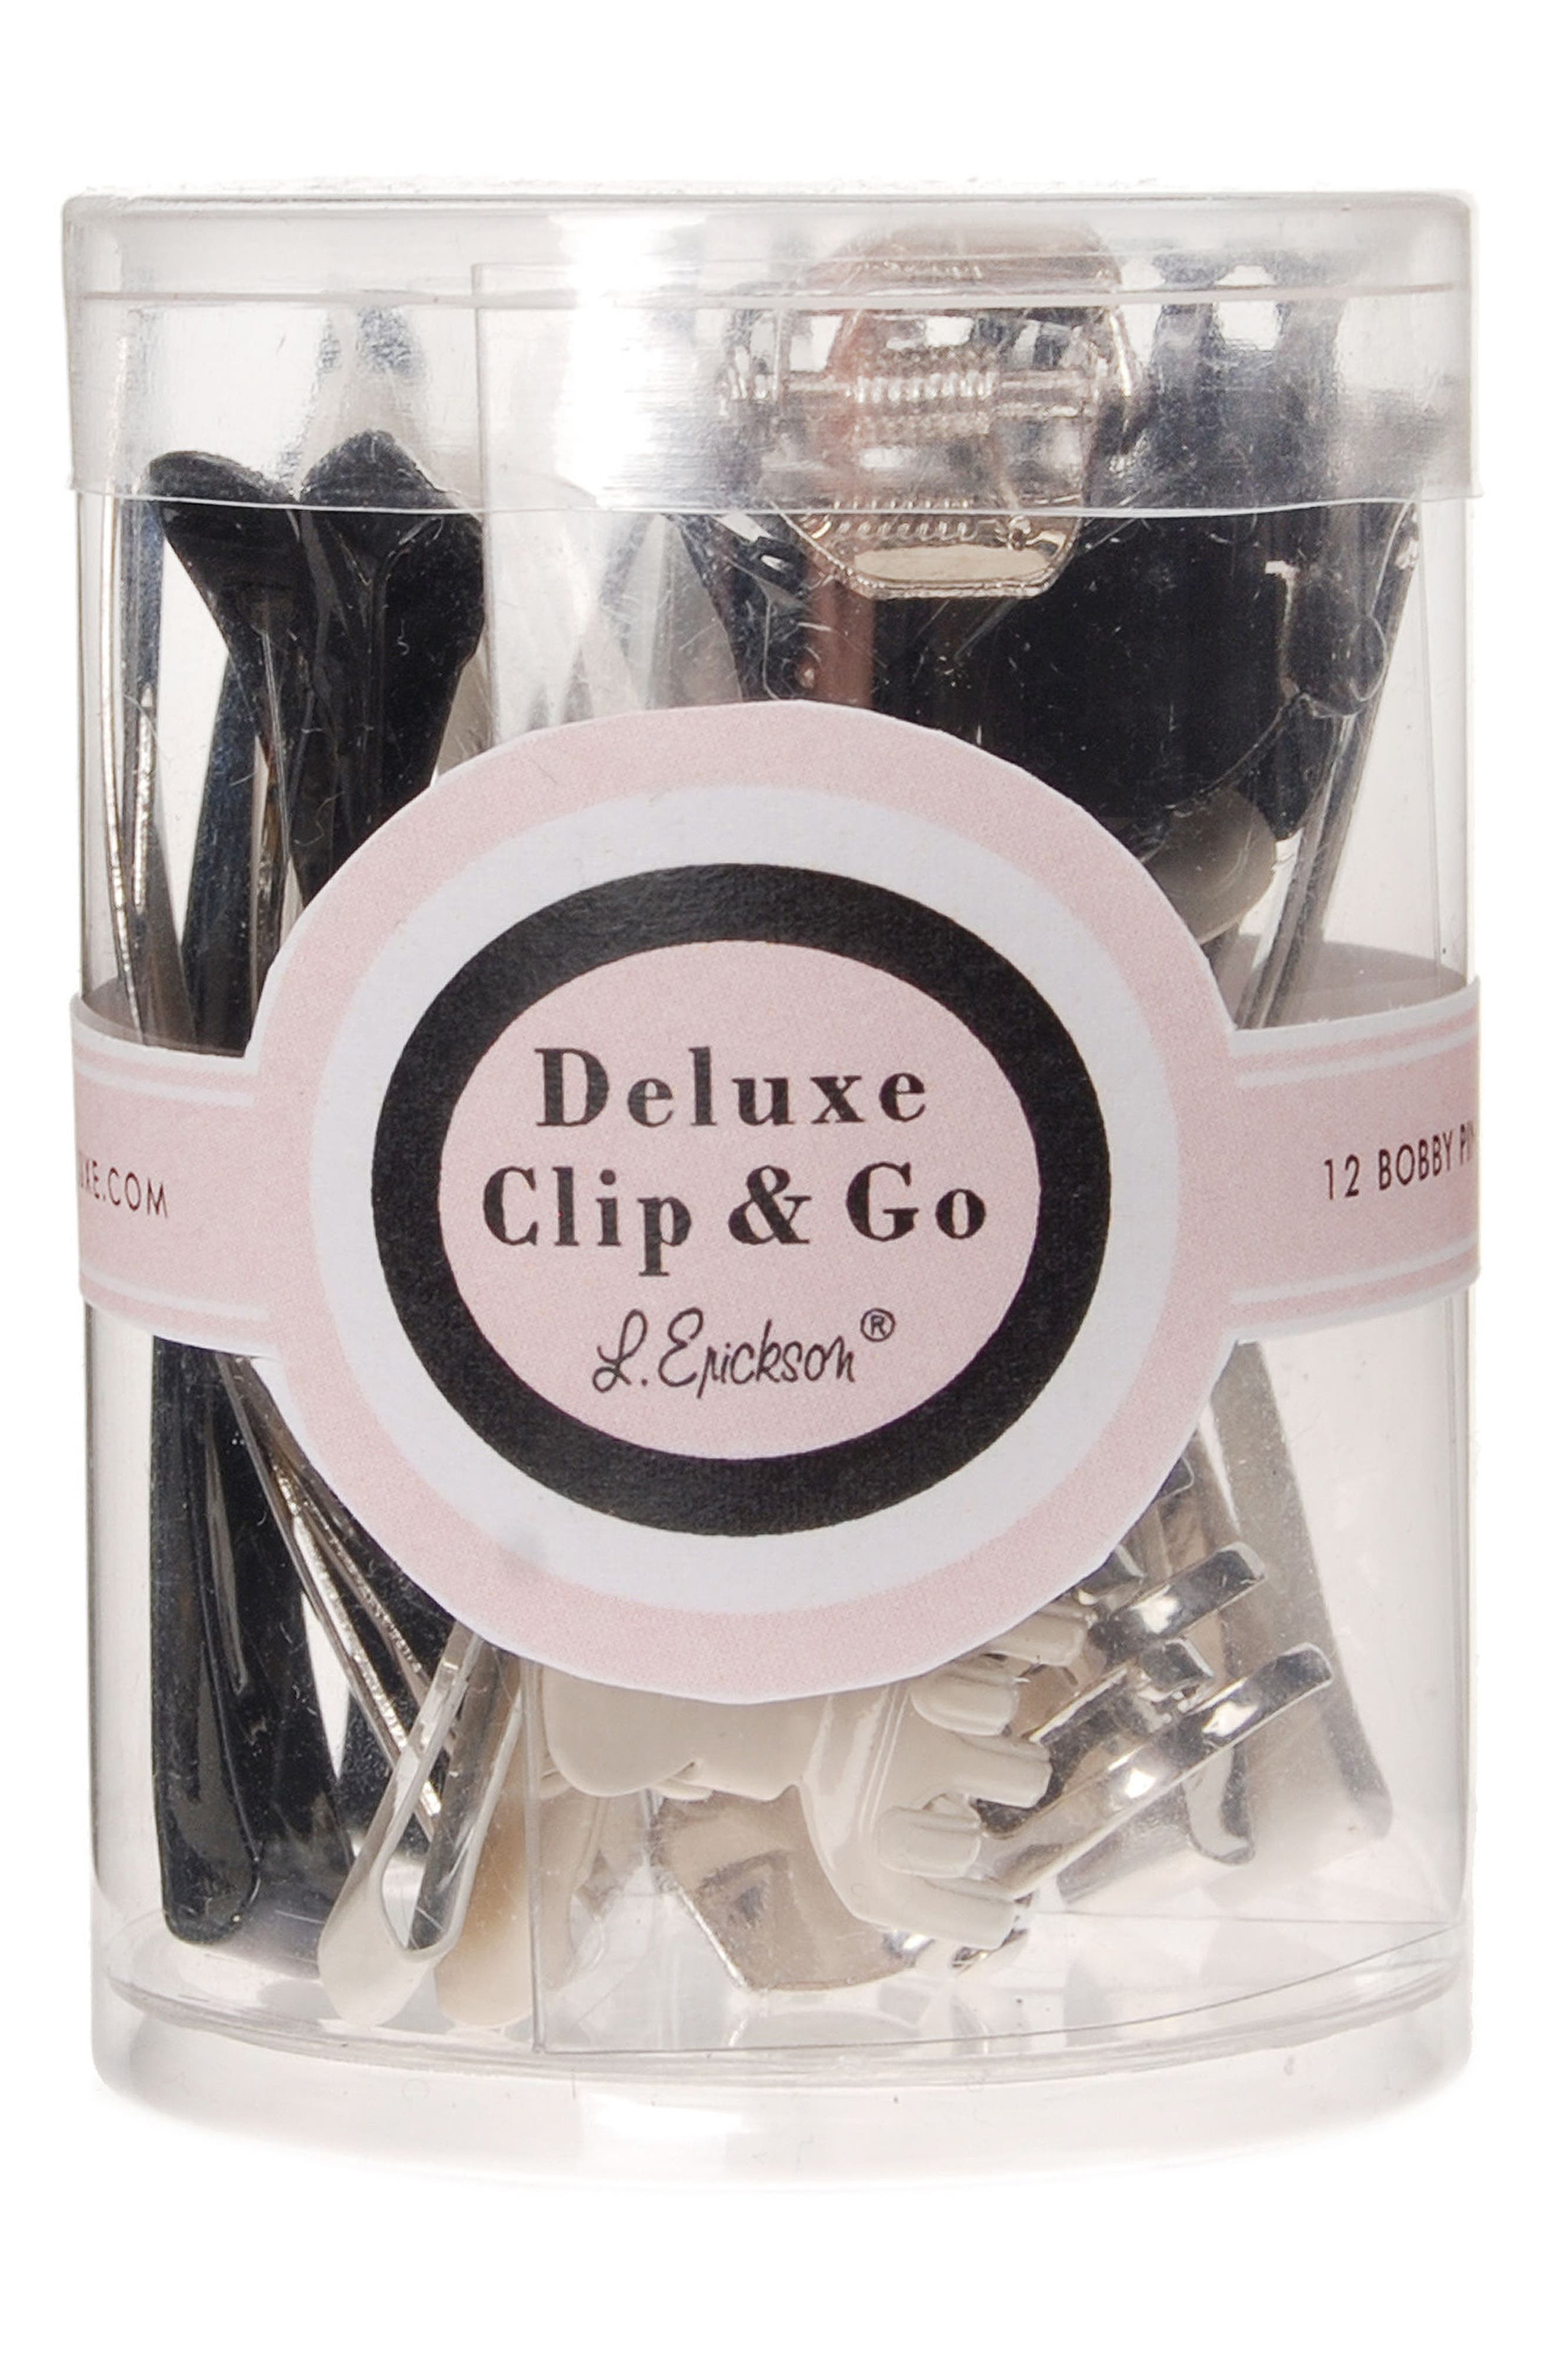 Deluxe Clip & Go Kit,                             Main thumbnail 1, color,                             Silver/ Gunmetal/ Black/ Ivory